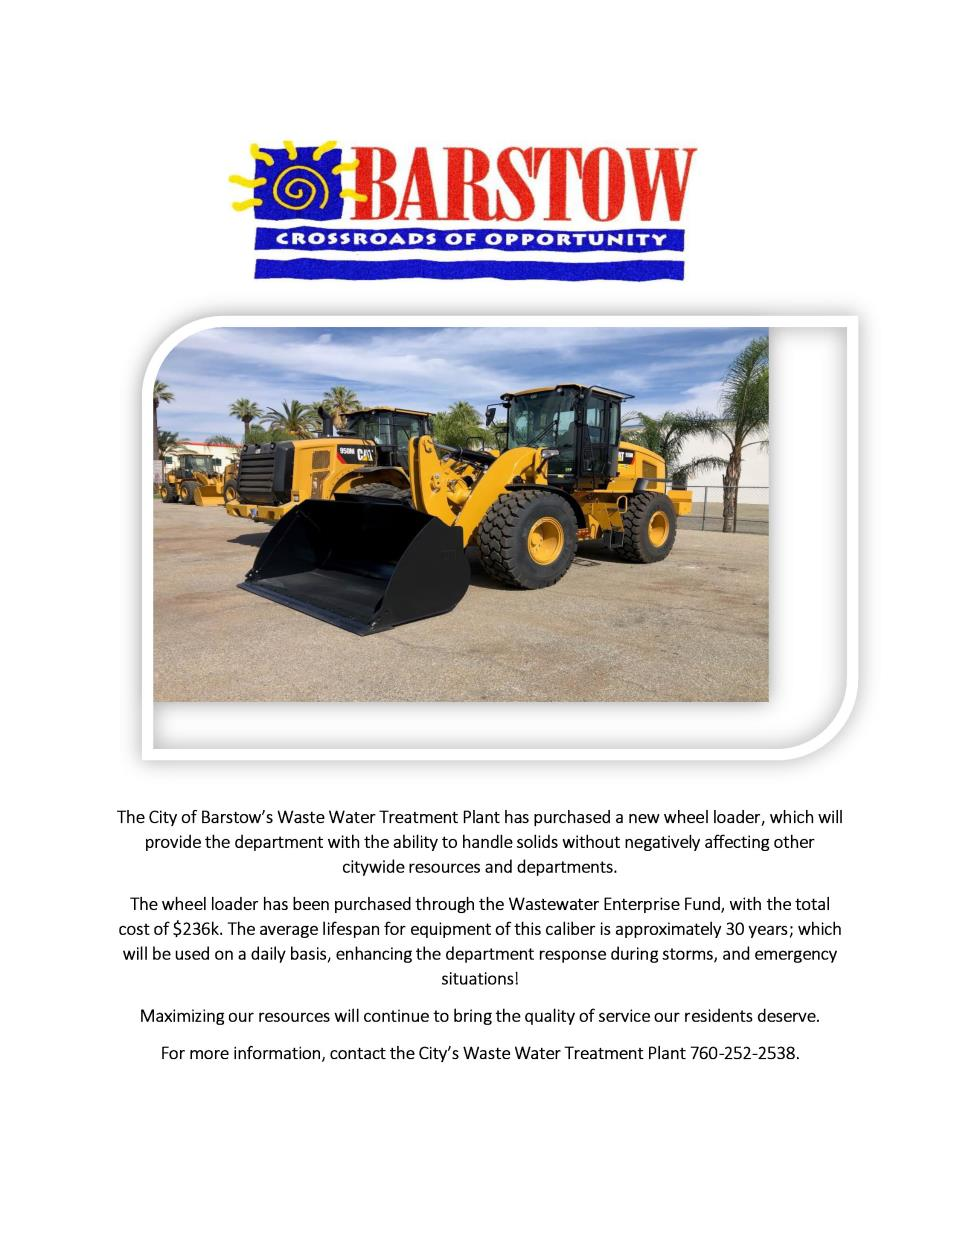 Barstow Wheel Loader Announcement